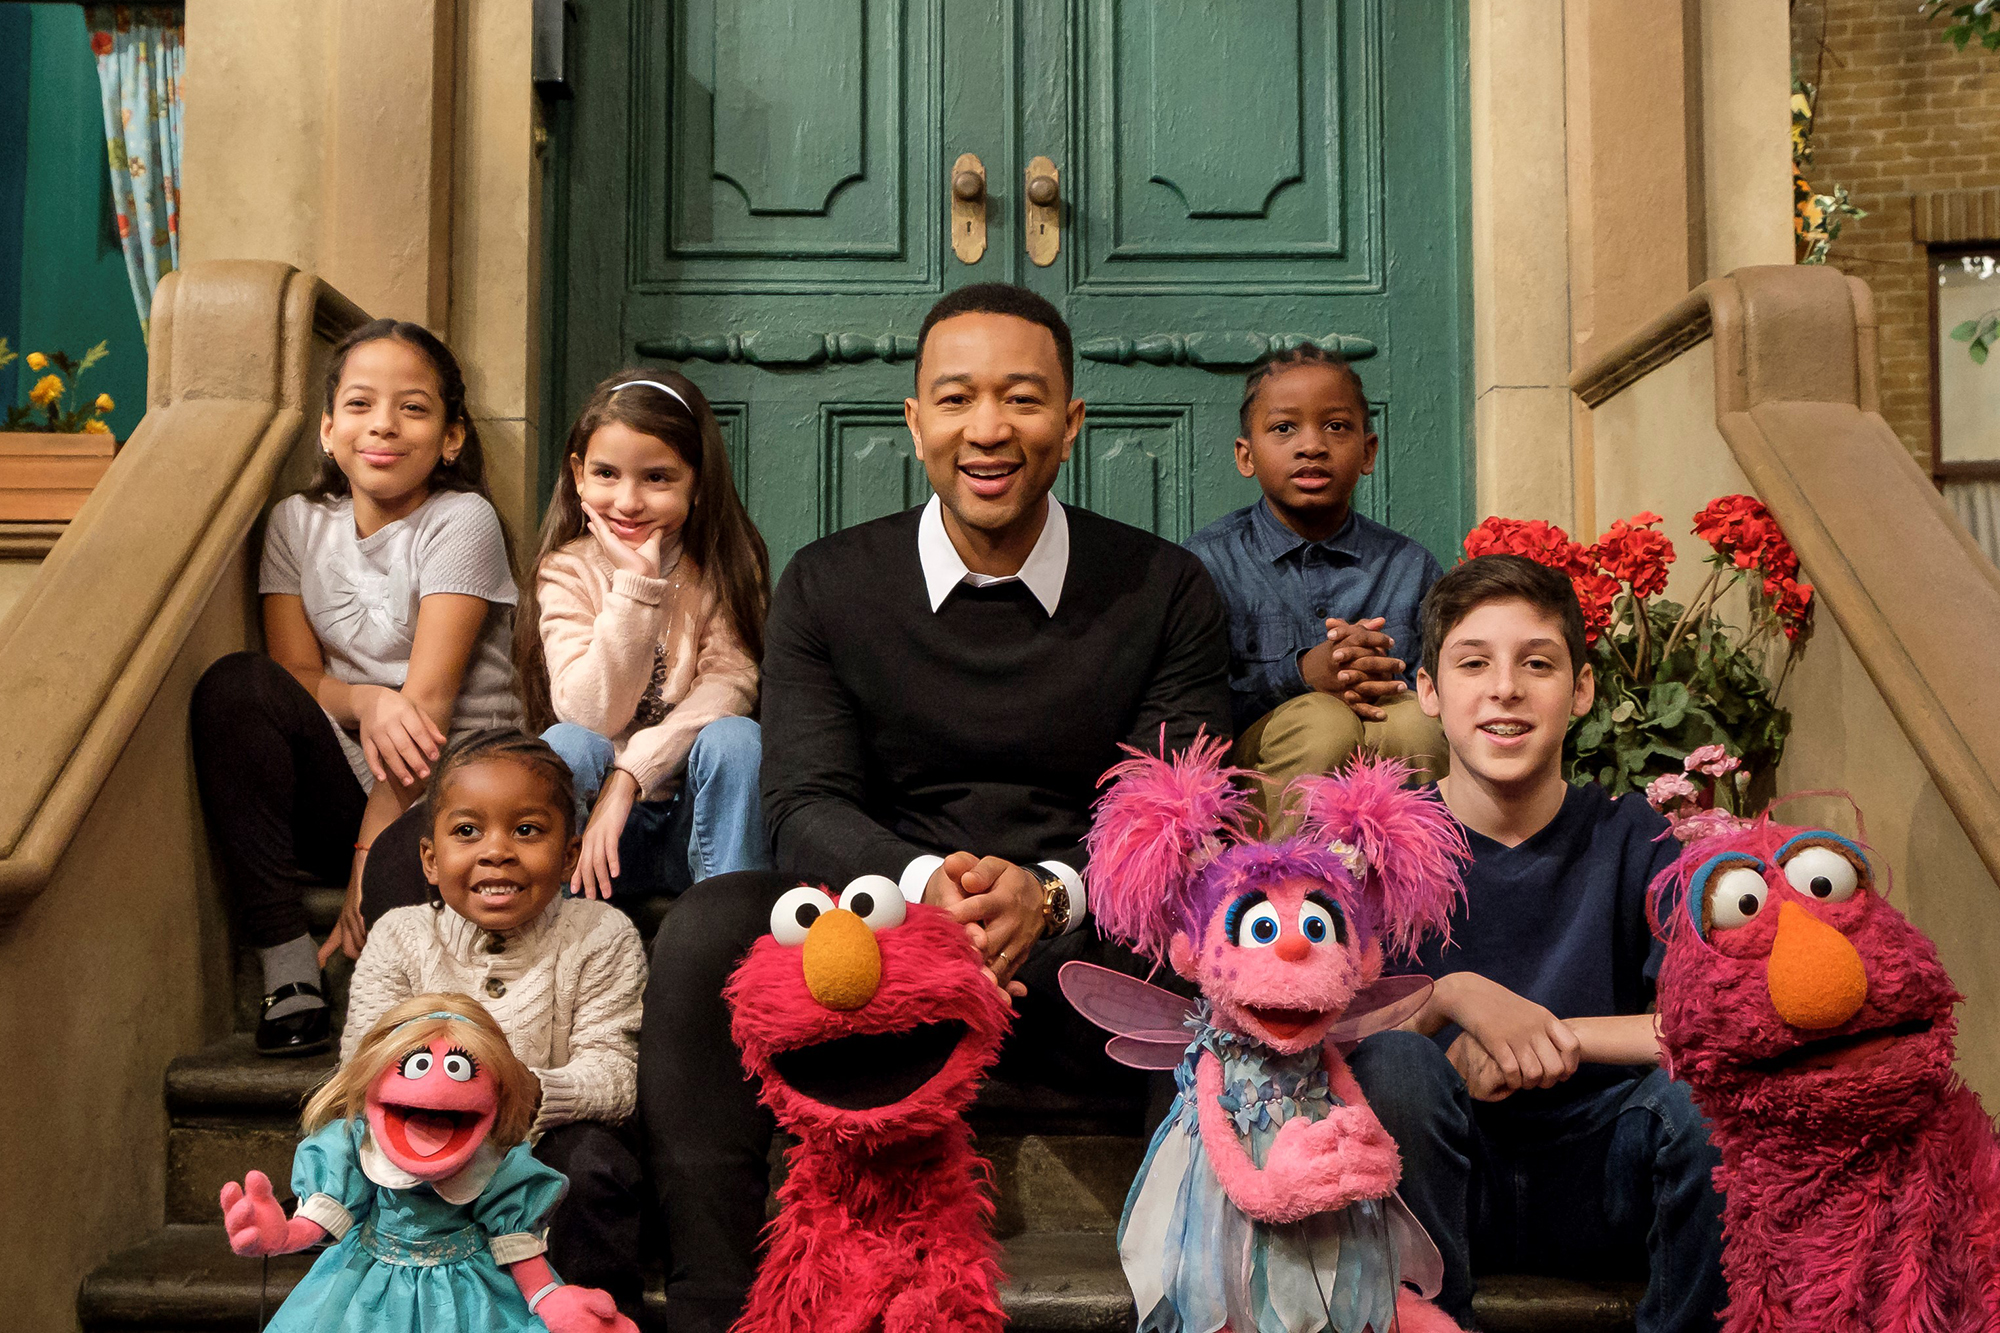 John Legend Sesame StreetCredit: Zach Hyman/Sesame Workshop